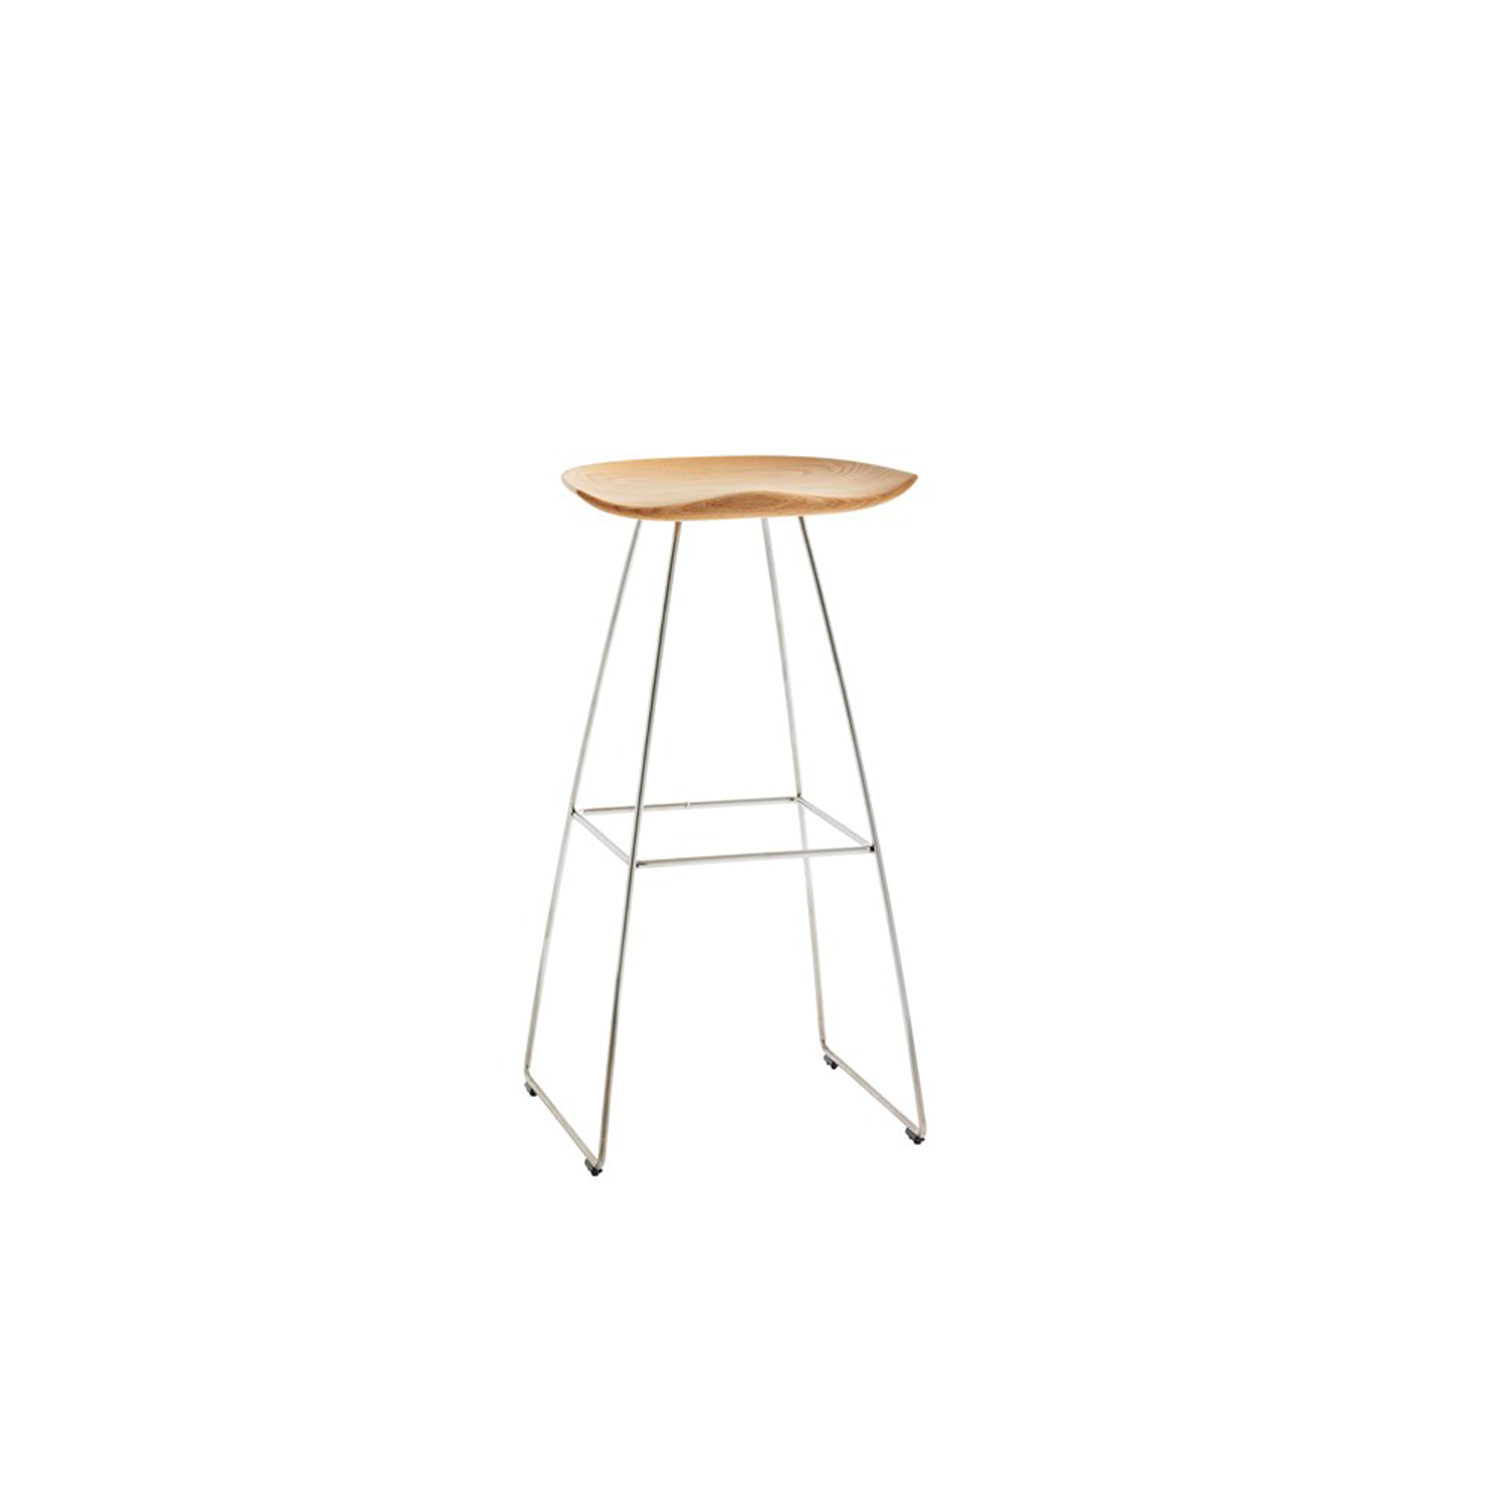 Kaz High Barstool - The inspiration for Kaz came from a tractor seat, here refined in the form of a stool that combines a contemporary look with timeless functionality. A wooden seat on an underframe of sturdy steel rod gives the stool a minimalistic expression that draws further attention to the wooden seat.